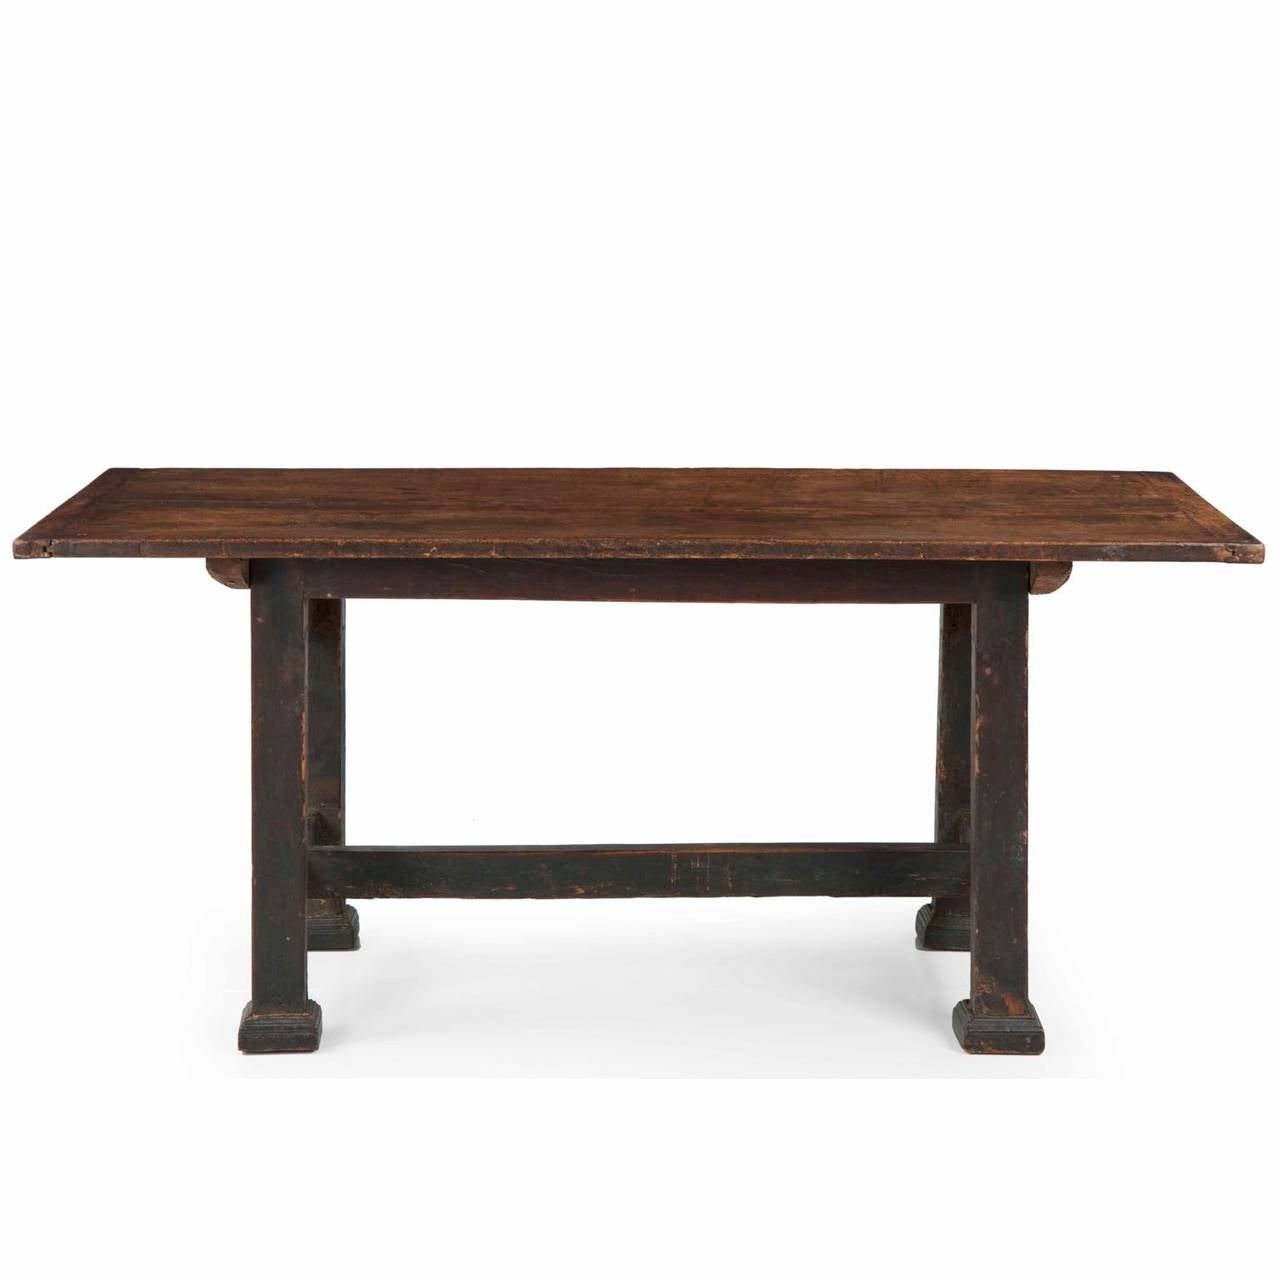 chippendale walnut antique dining table in swedish